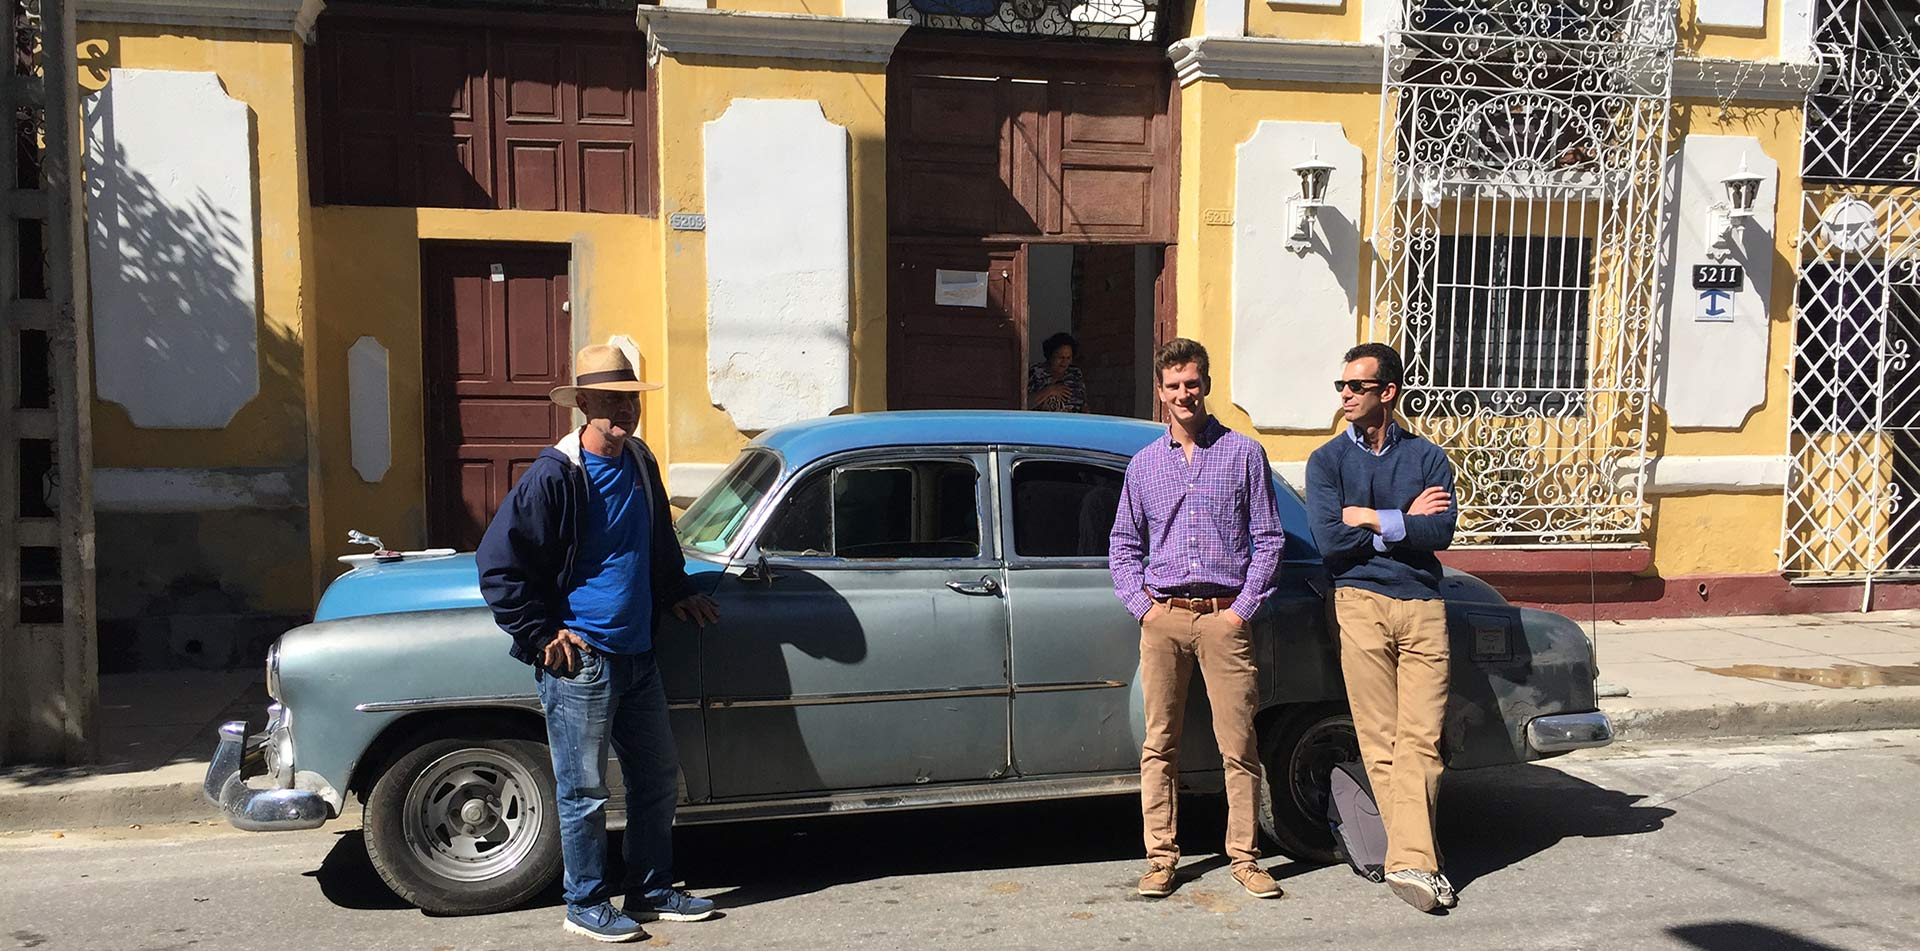 Edward and Jack Piegza with Classic Cars in Havana, Cuba